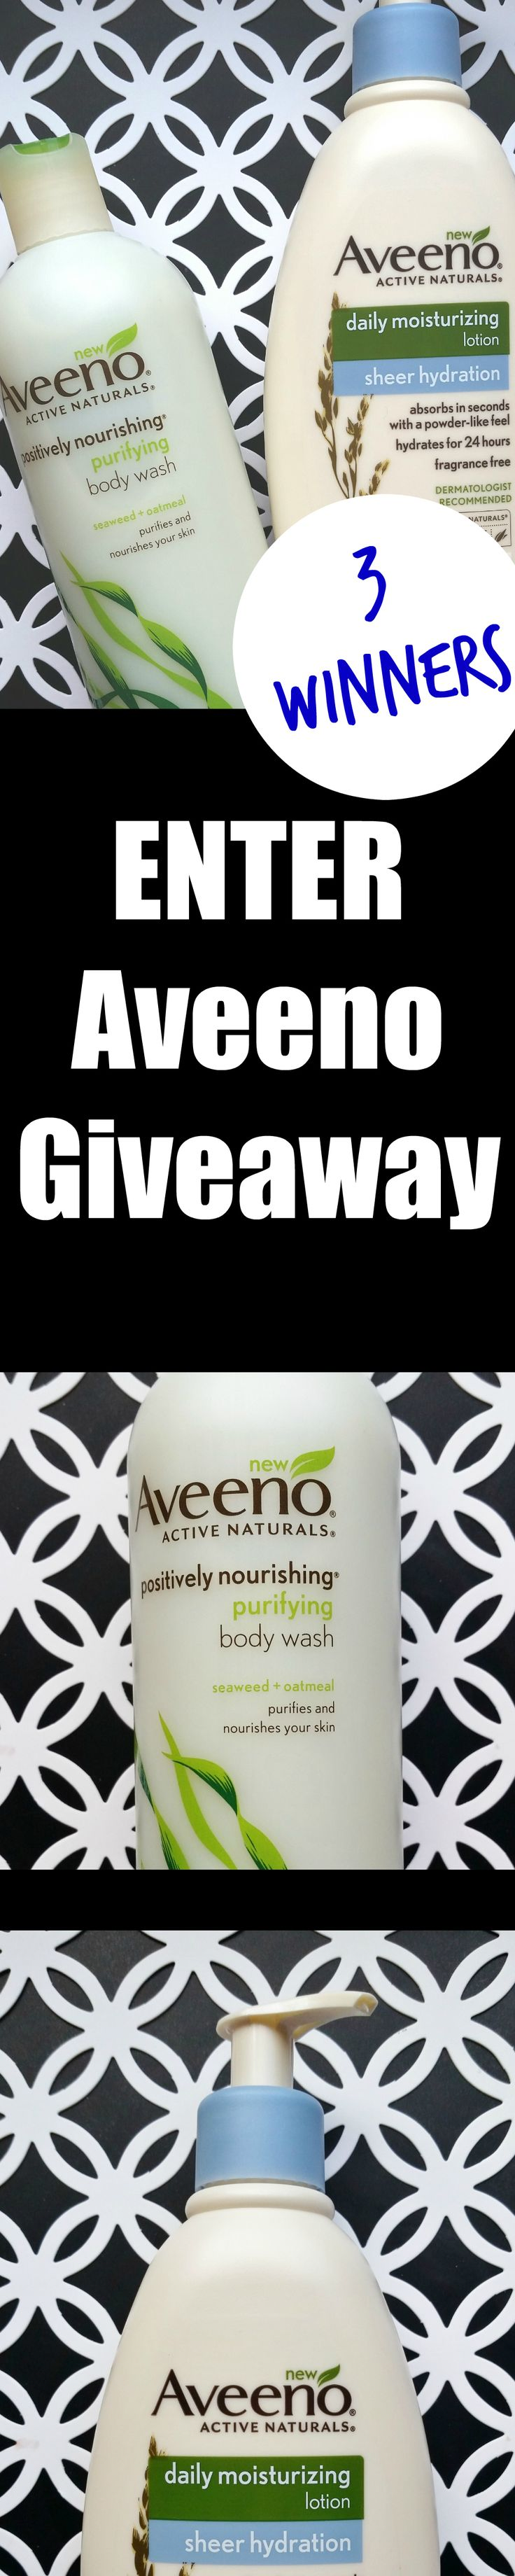 GIVEAWAY of Aveeno Active Naturals *NEW* Positively Nourishing Purifying Body Wash plus Moisturizing Sheer Hydration Lotion http://www.beautystat.com/site/skincare/review-aveeno-daily-moisturizing-lotion-aveeno-positively-nourishing-purifying-body-wash #ad (3 winners, ends May 21) #AveenoSheerHydration #AveenoPurifying